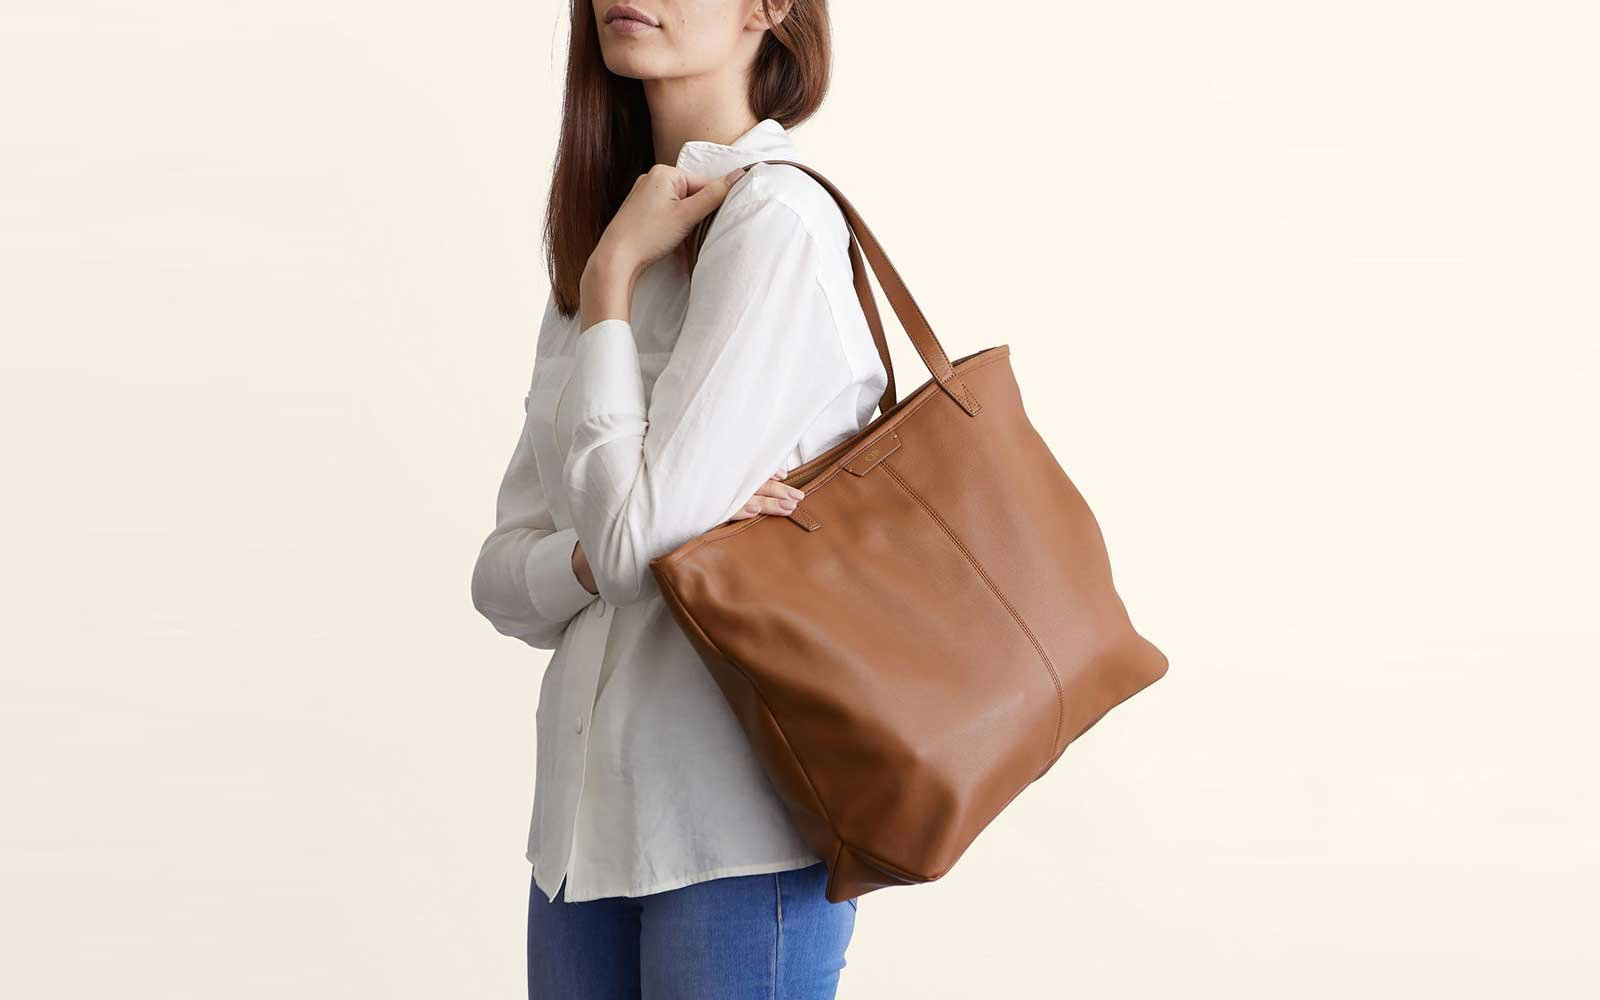 Woman Holding Tan Leather Tote